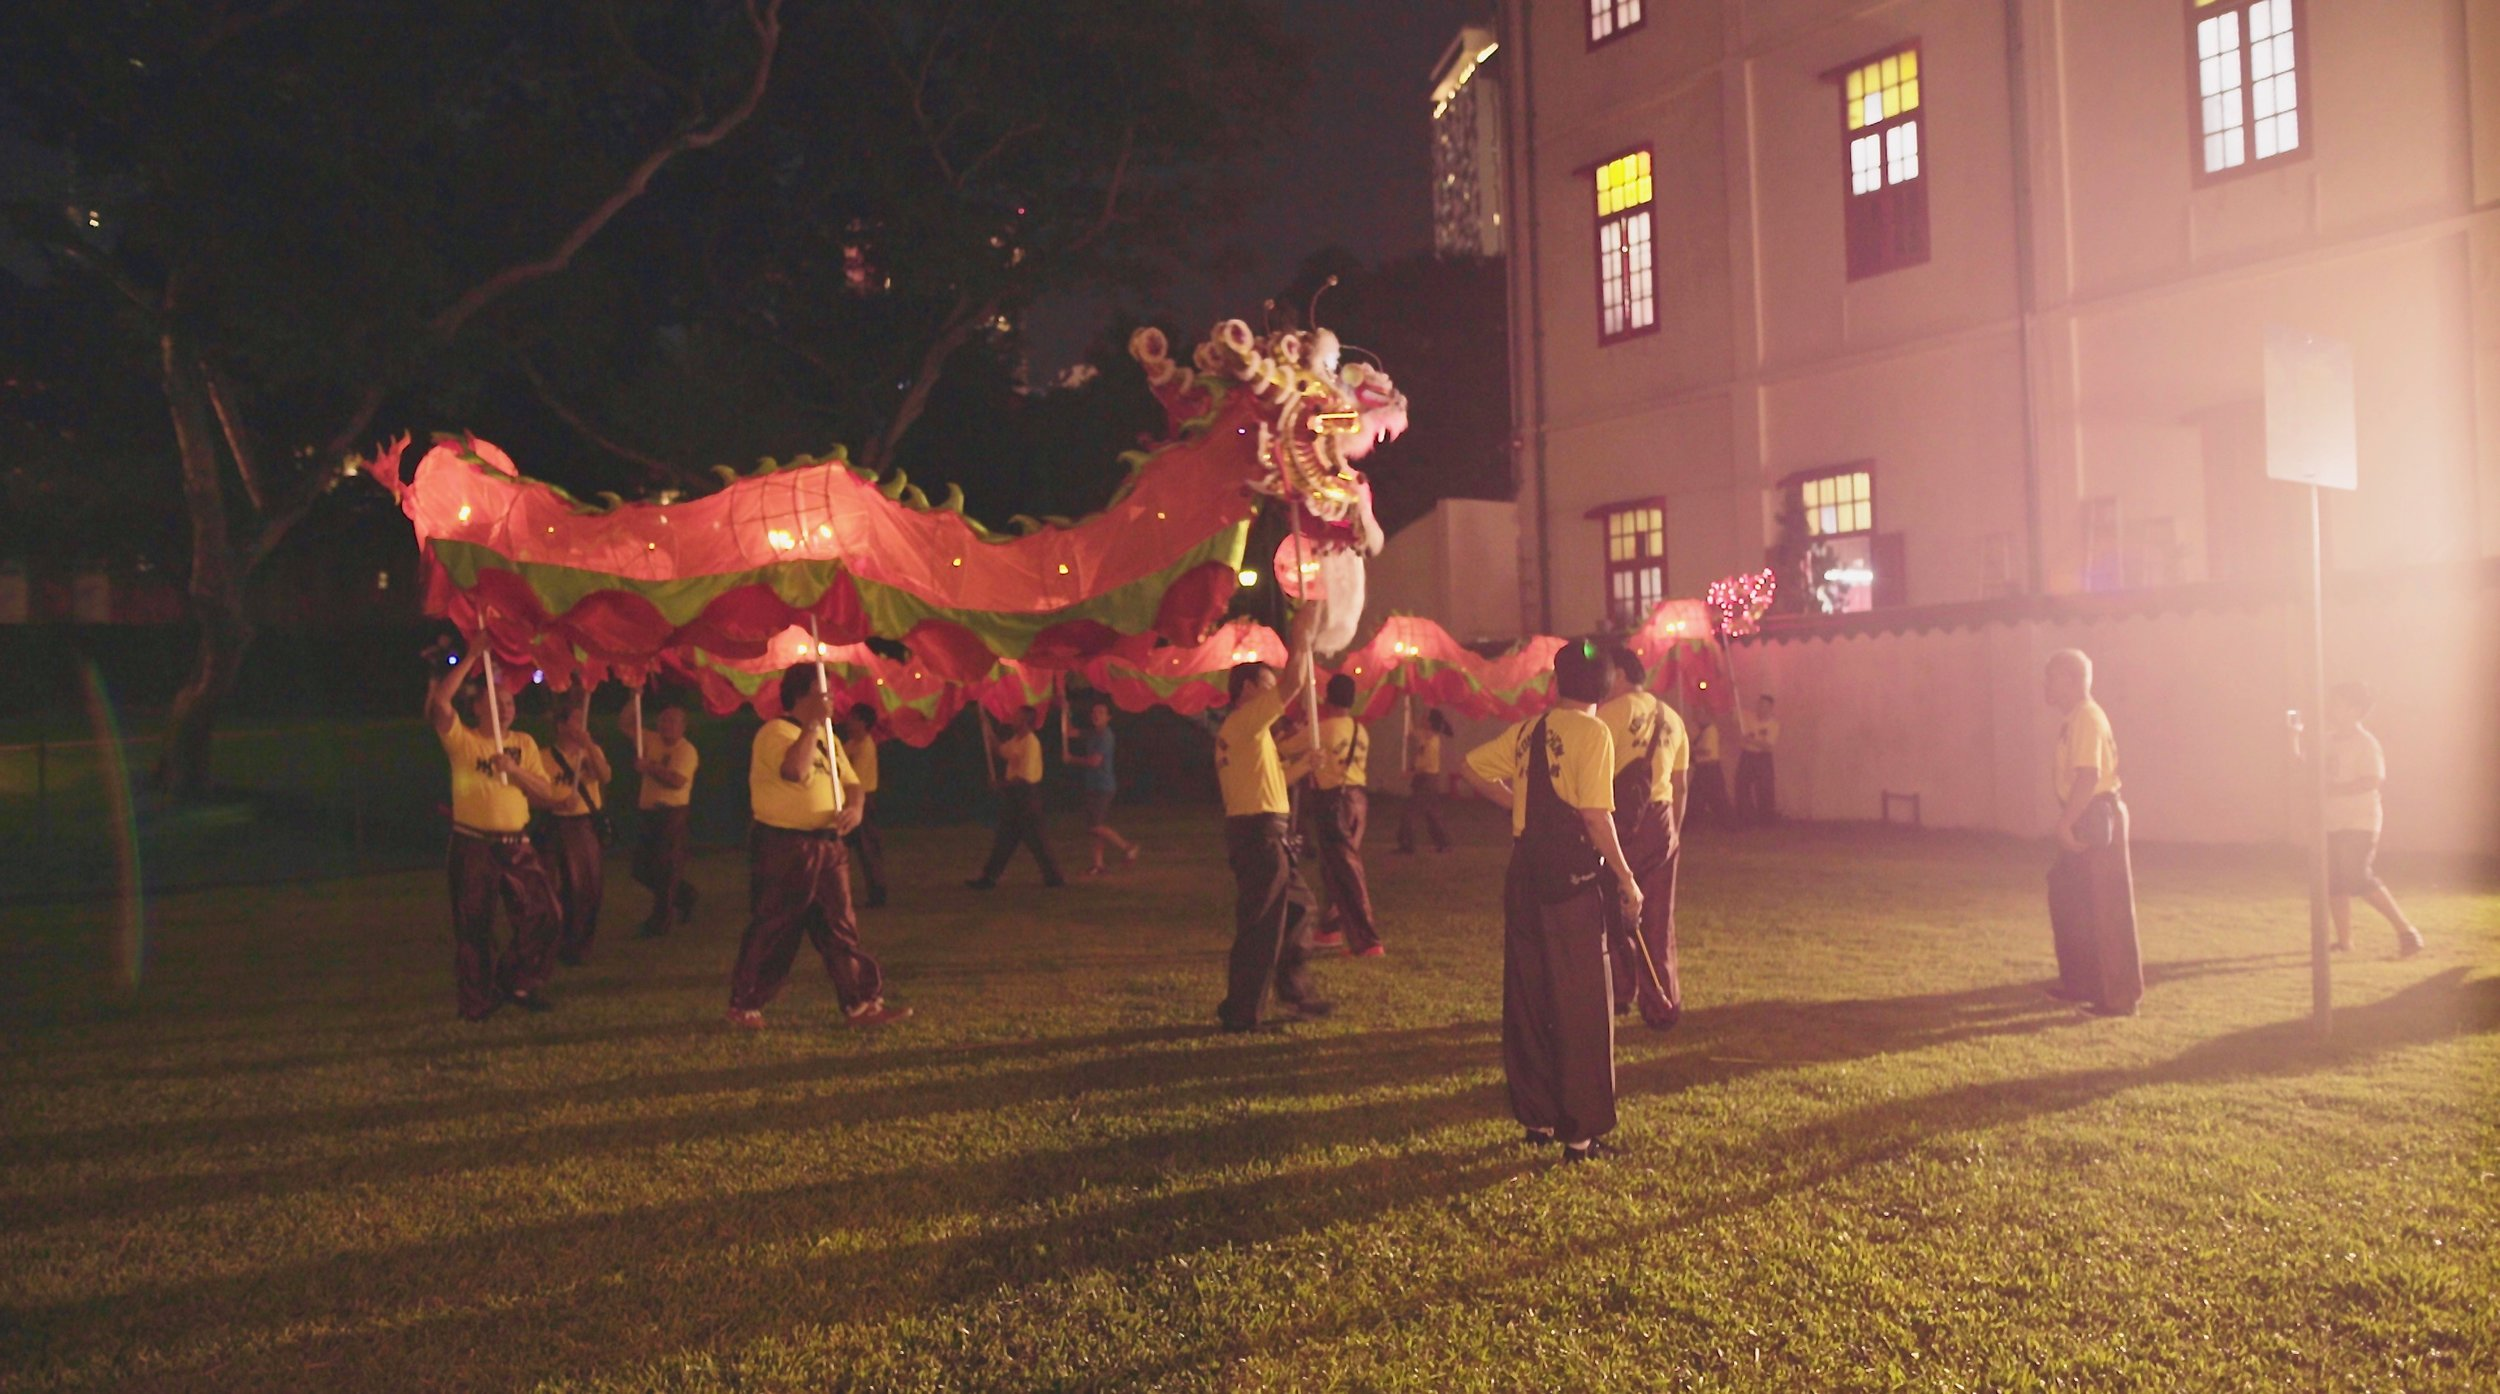 Screen grab : Intangible Cultural Heritage documentary on Mid-Autumn Festival.